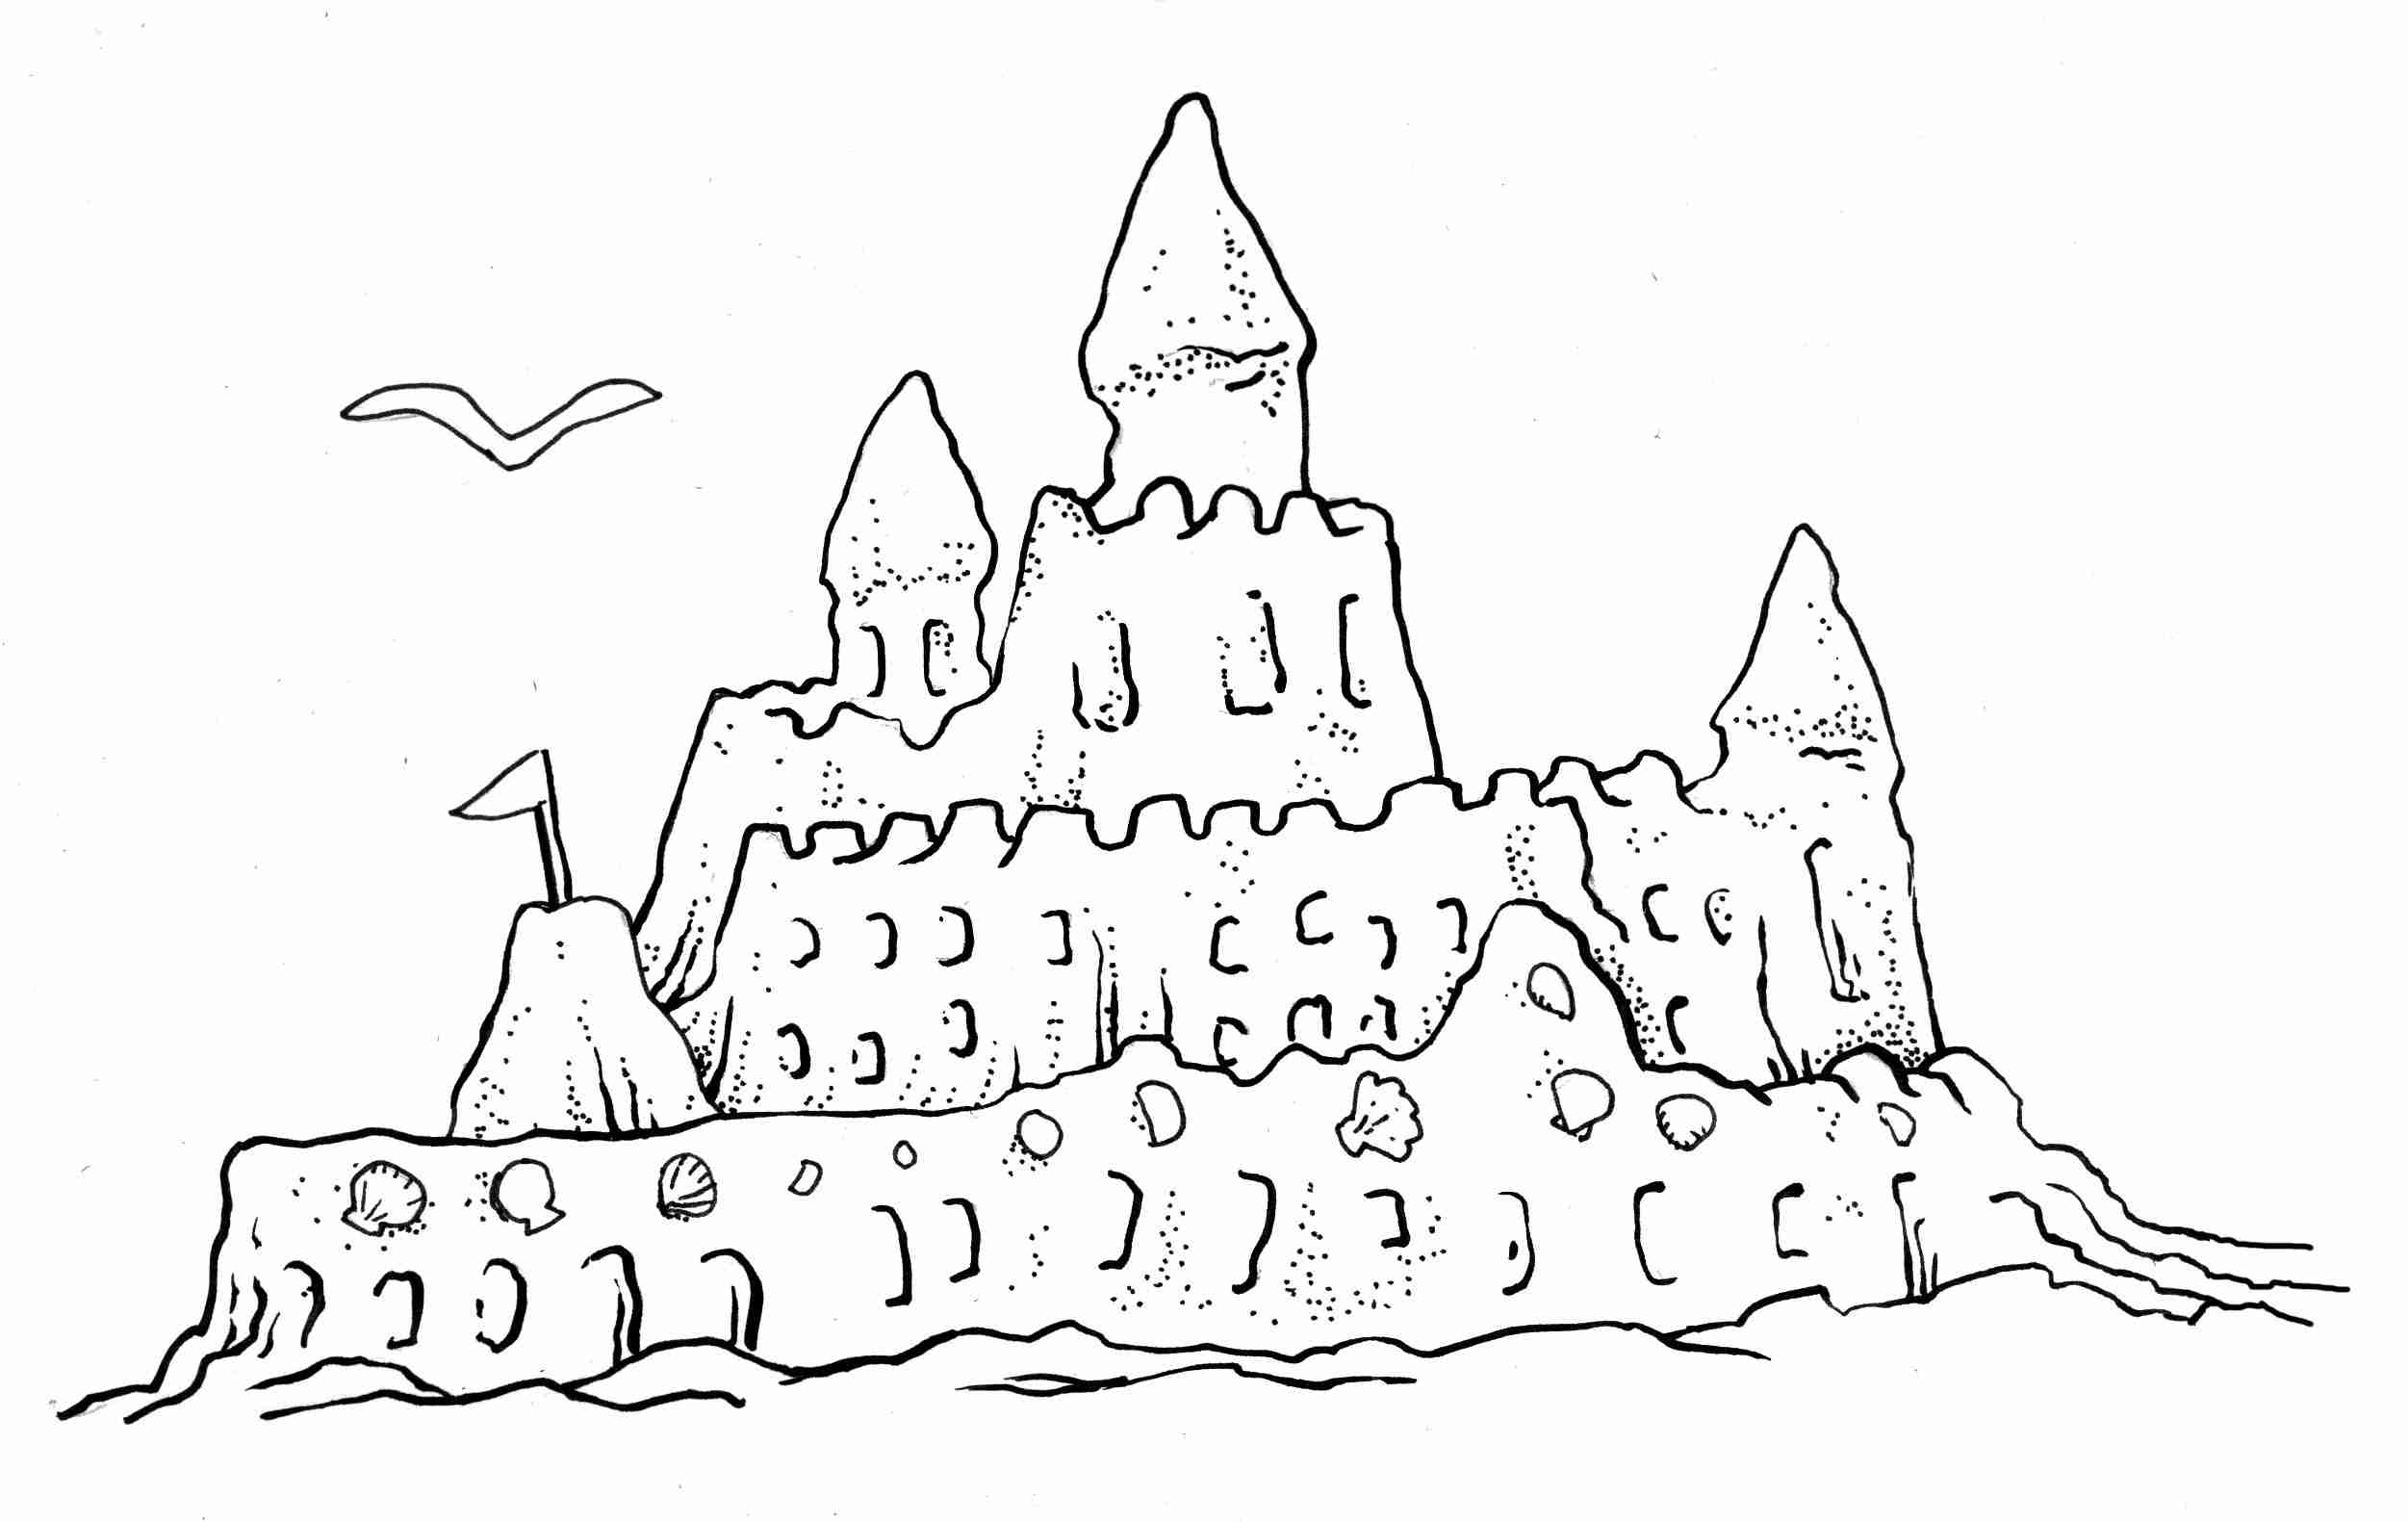 printable sand castle coloring page sand castle coloring pages getcoloringpagescom sand castle printable page coloring